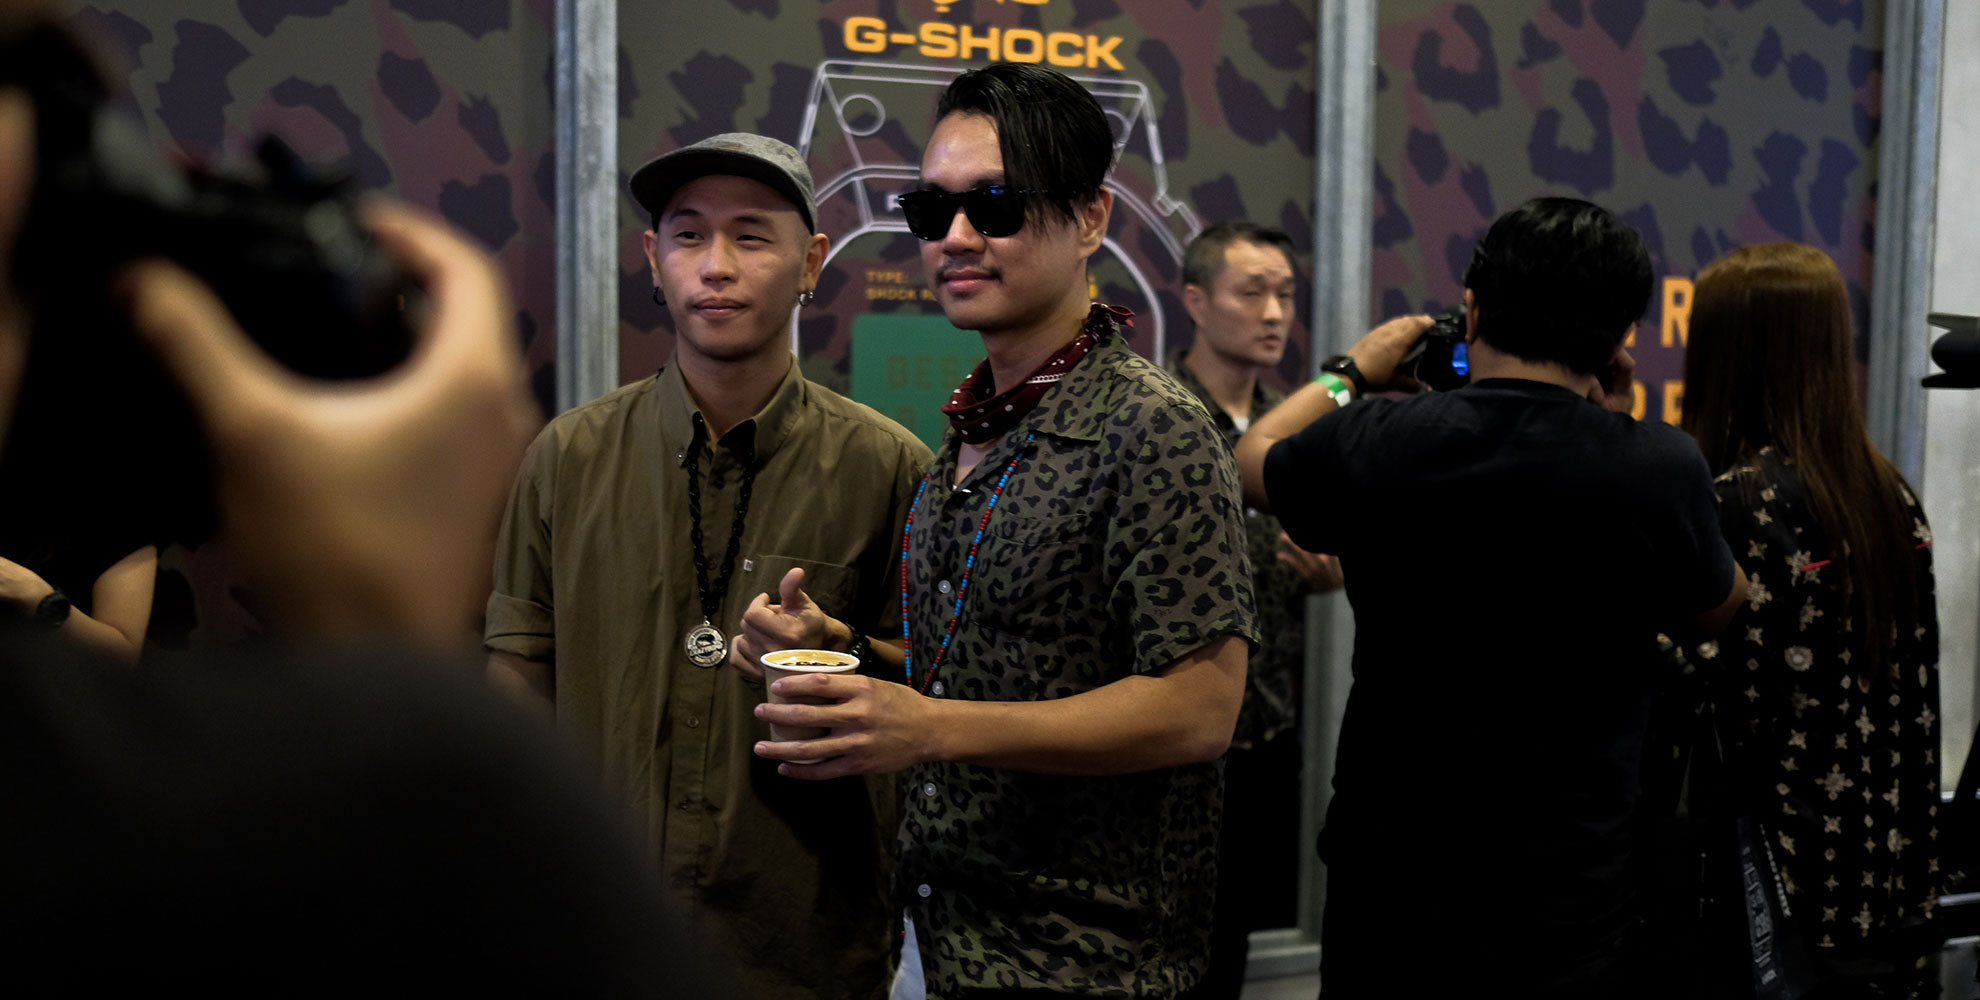 G-Shock x SBTG Media Launch